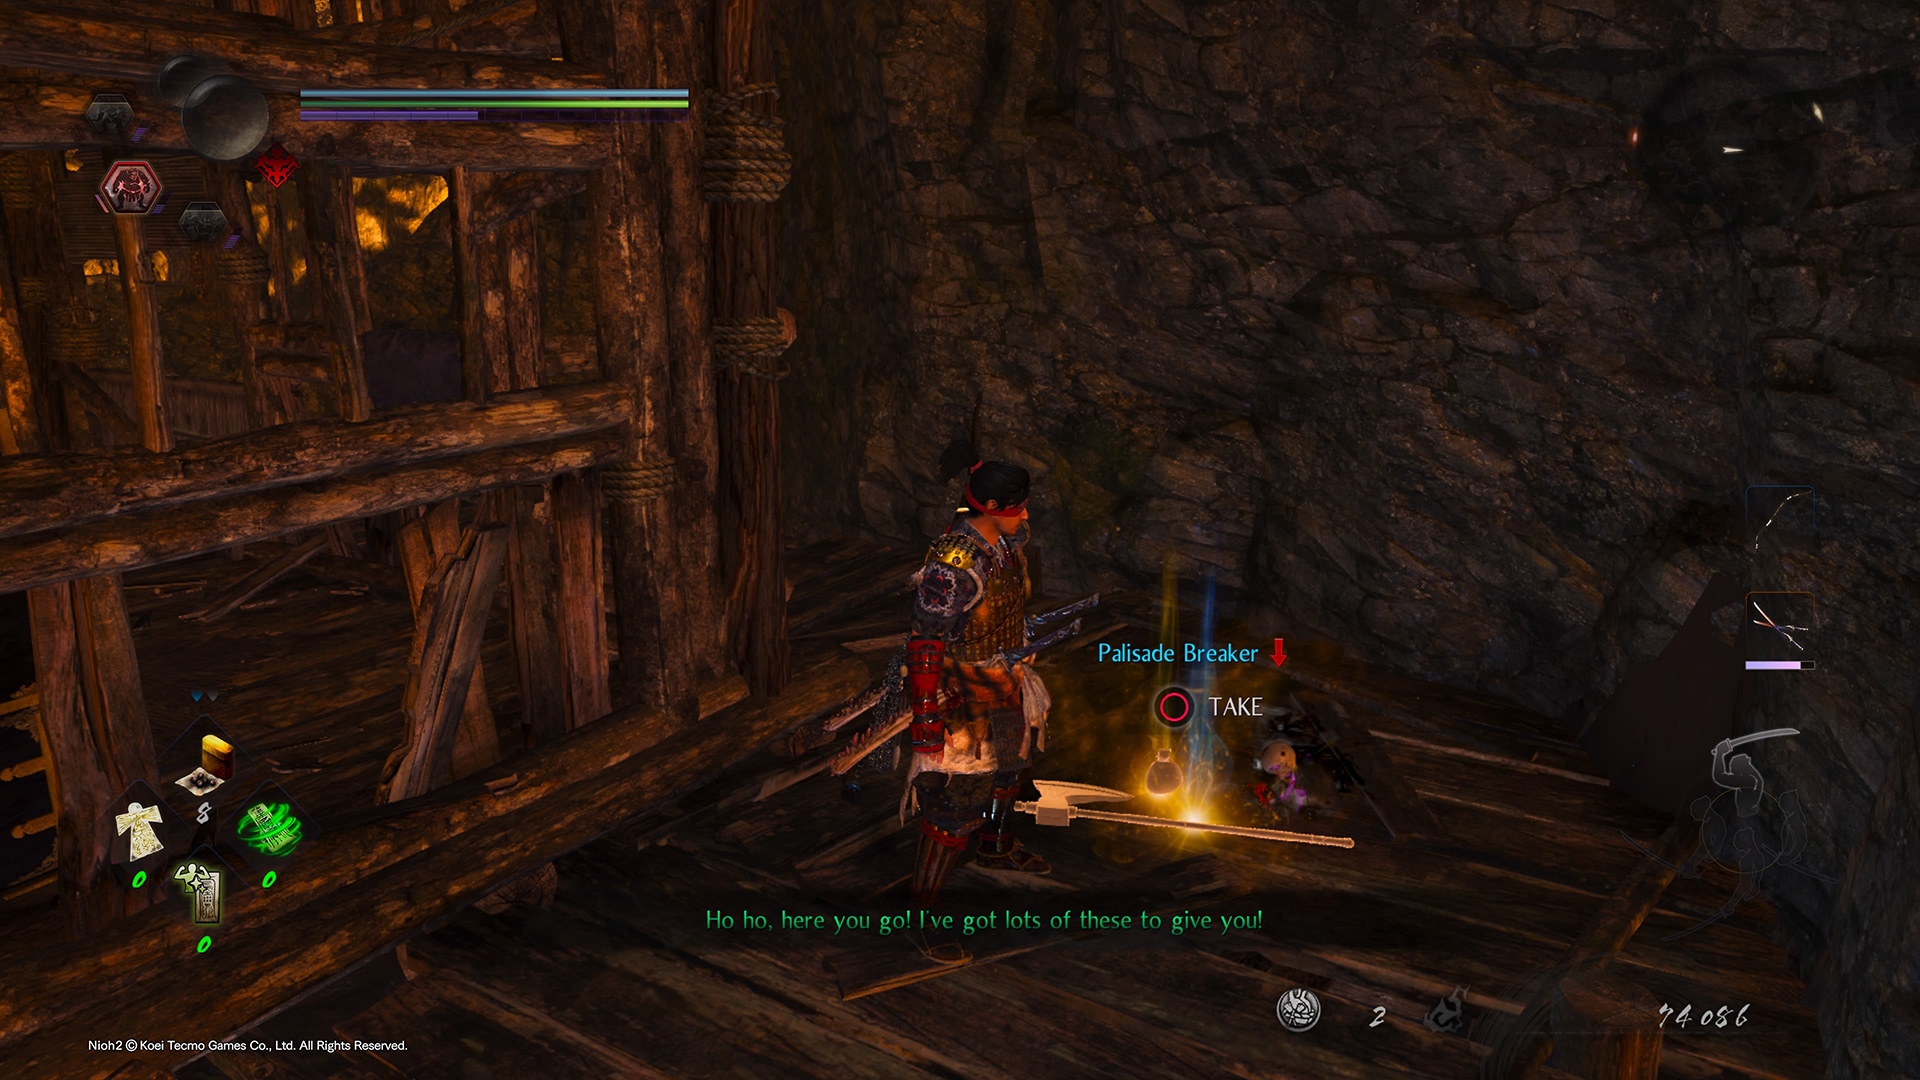 Trading items with a Sudama in Nioh 2